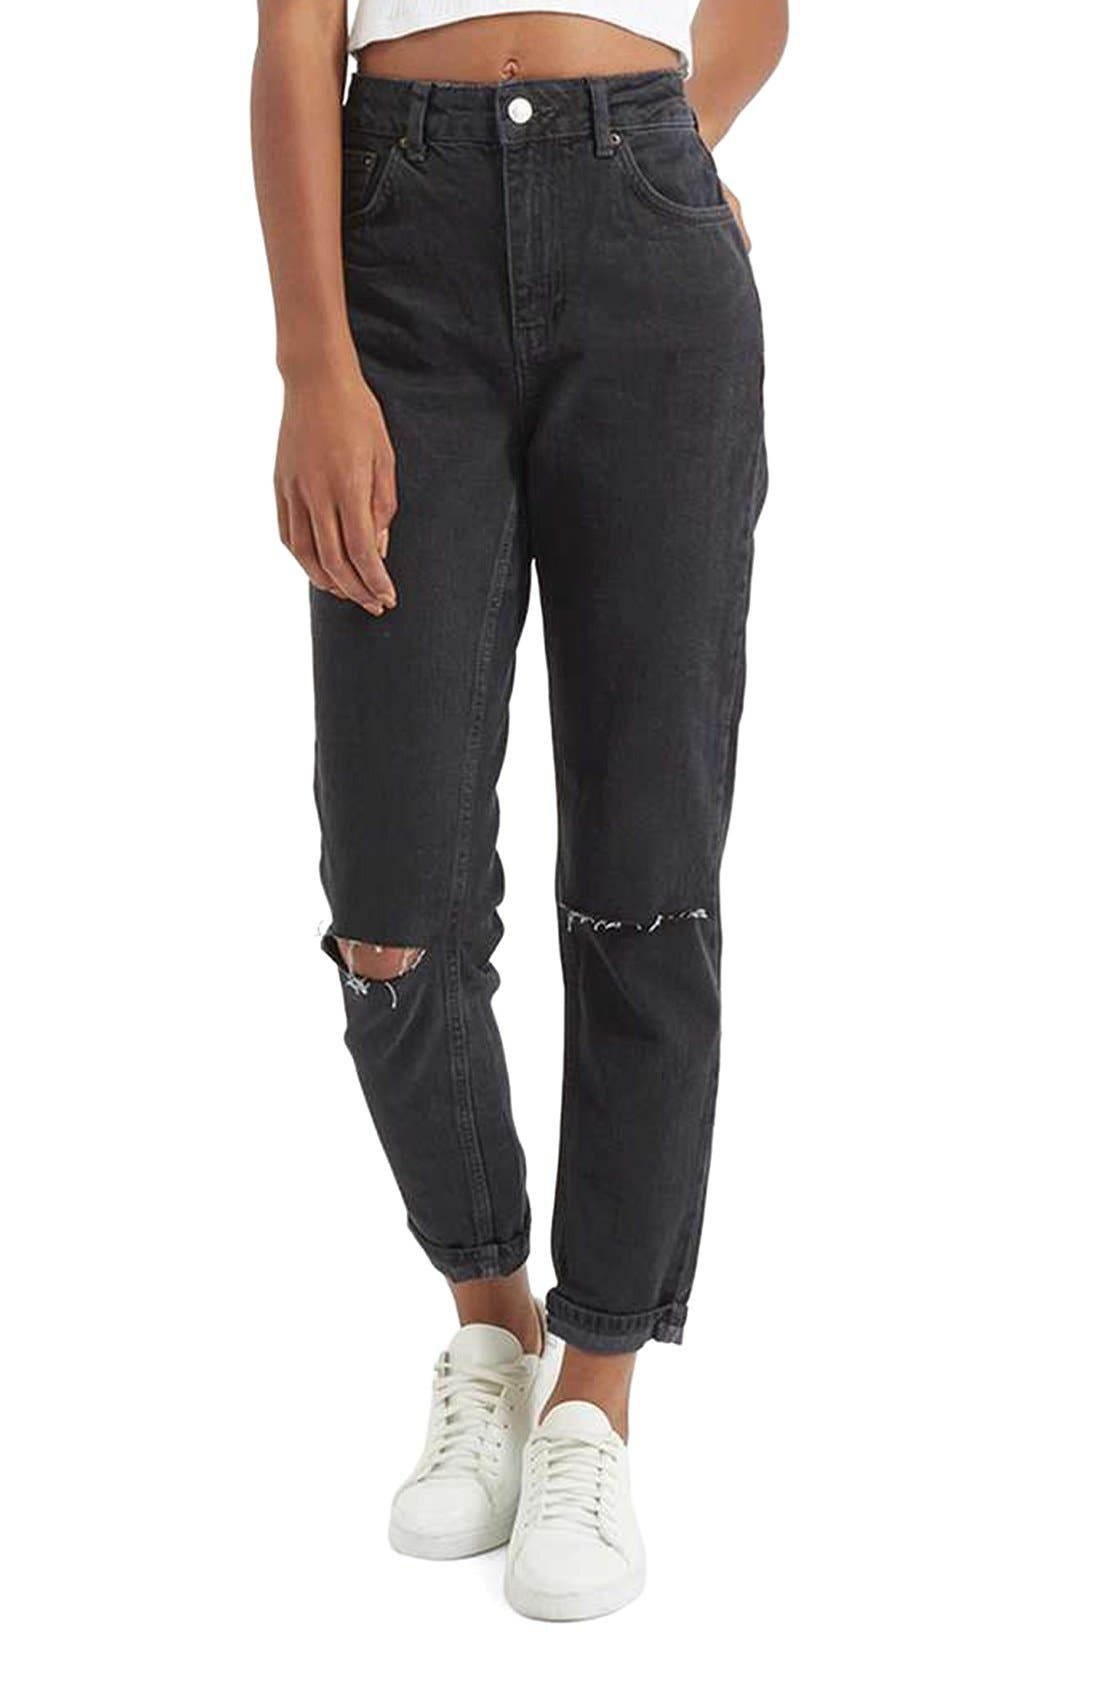 Alternate Image 1 Selected - Topshop Moto Mom Washed Ripped Jeans